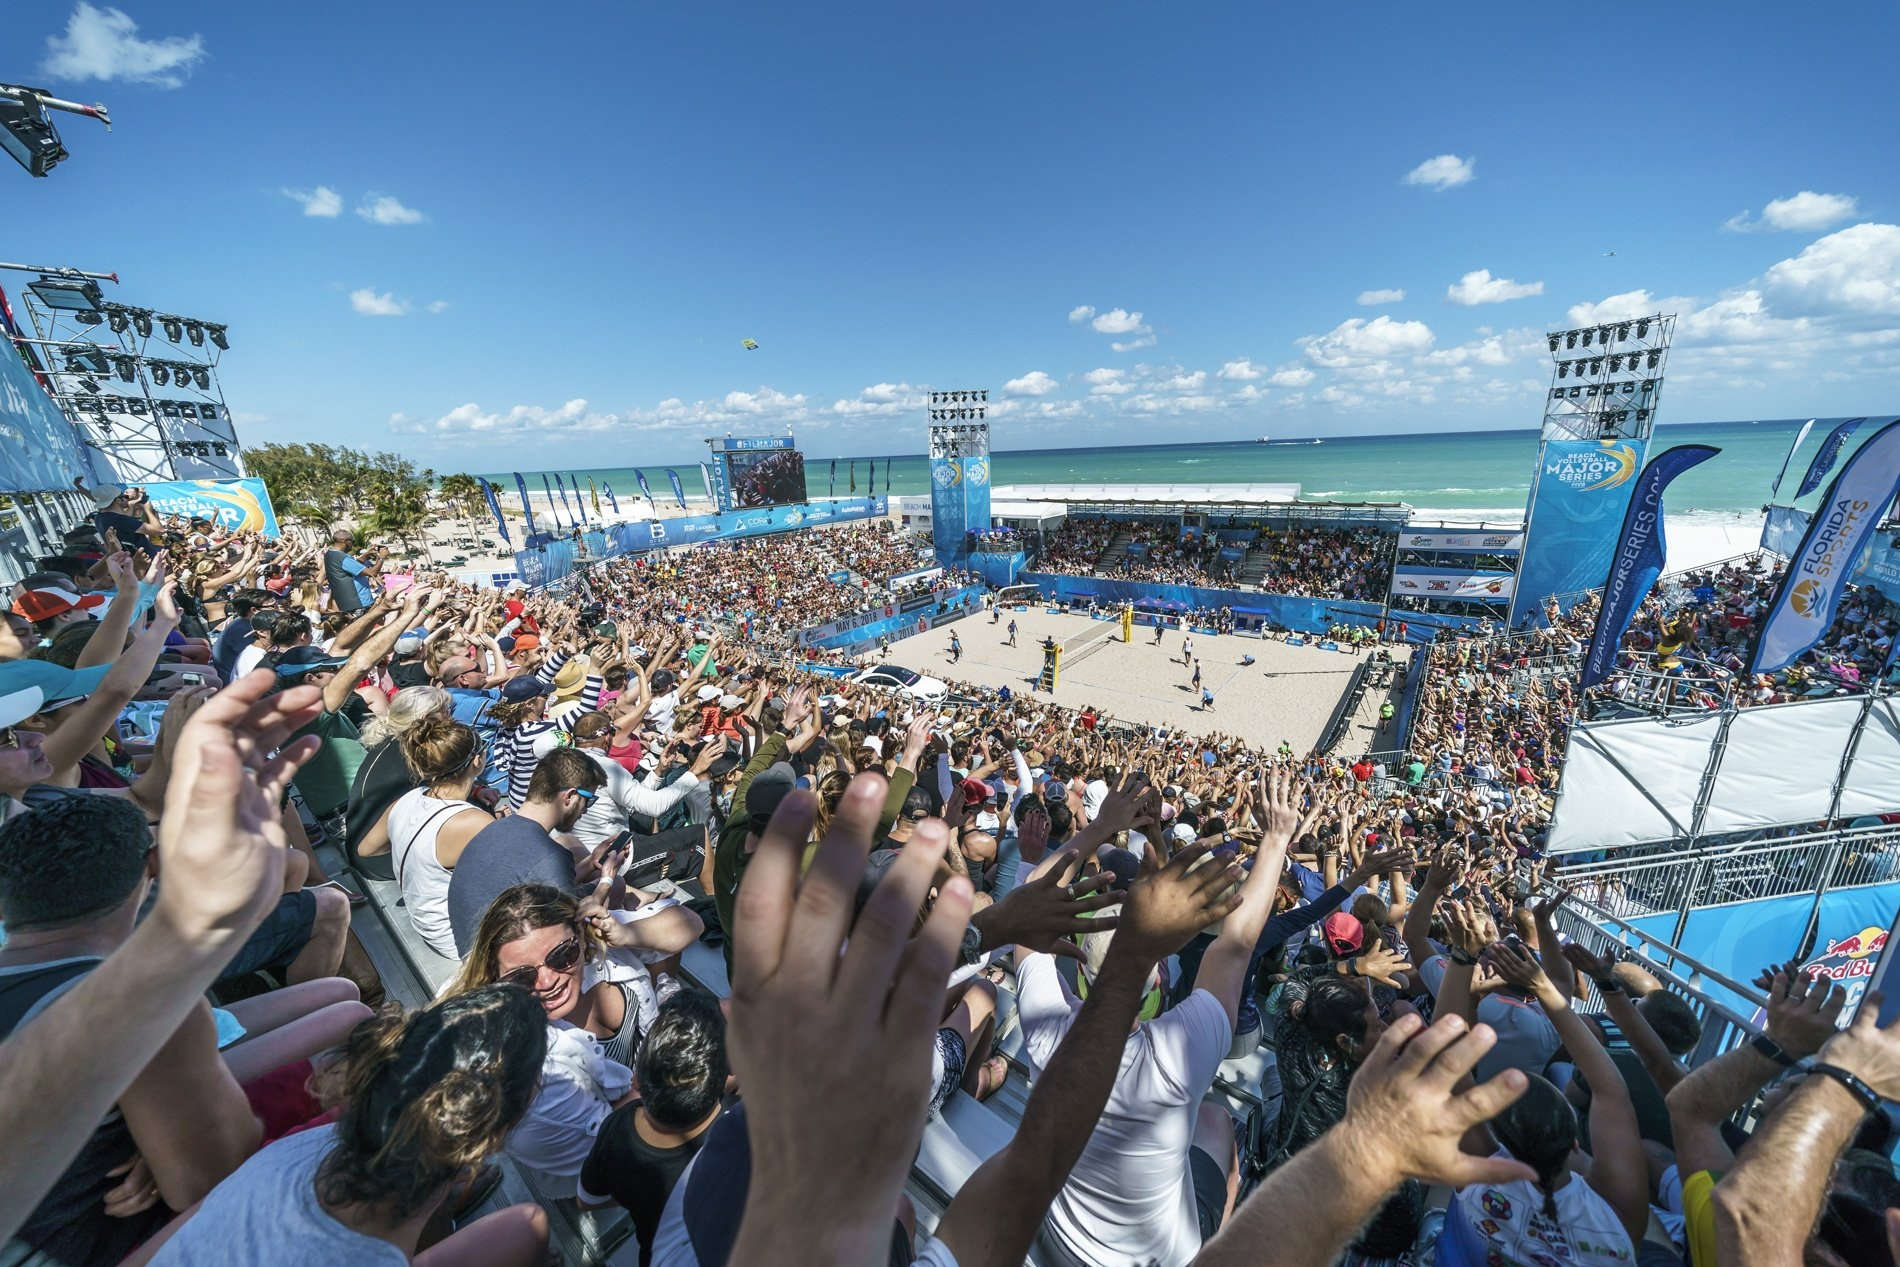 2015 marked the beginning of the Beach Majors Series